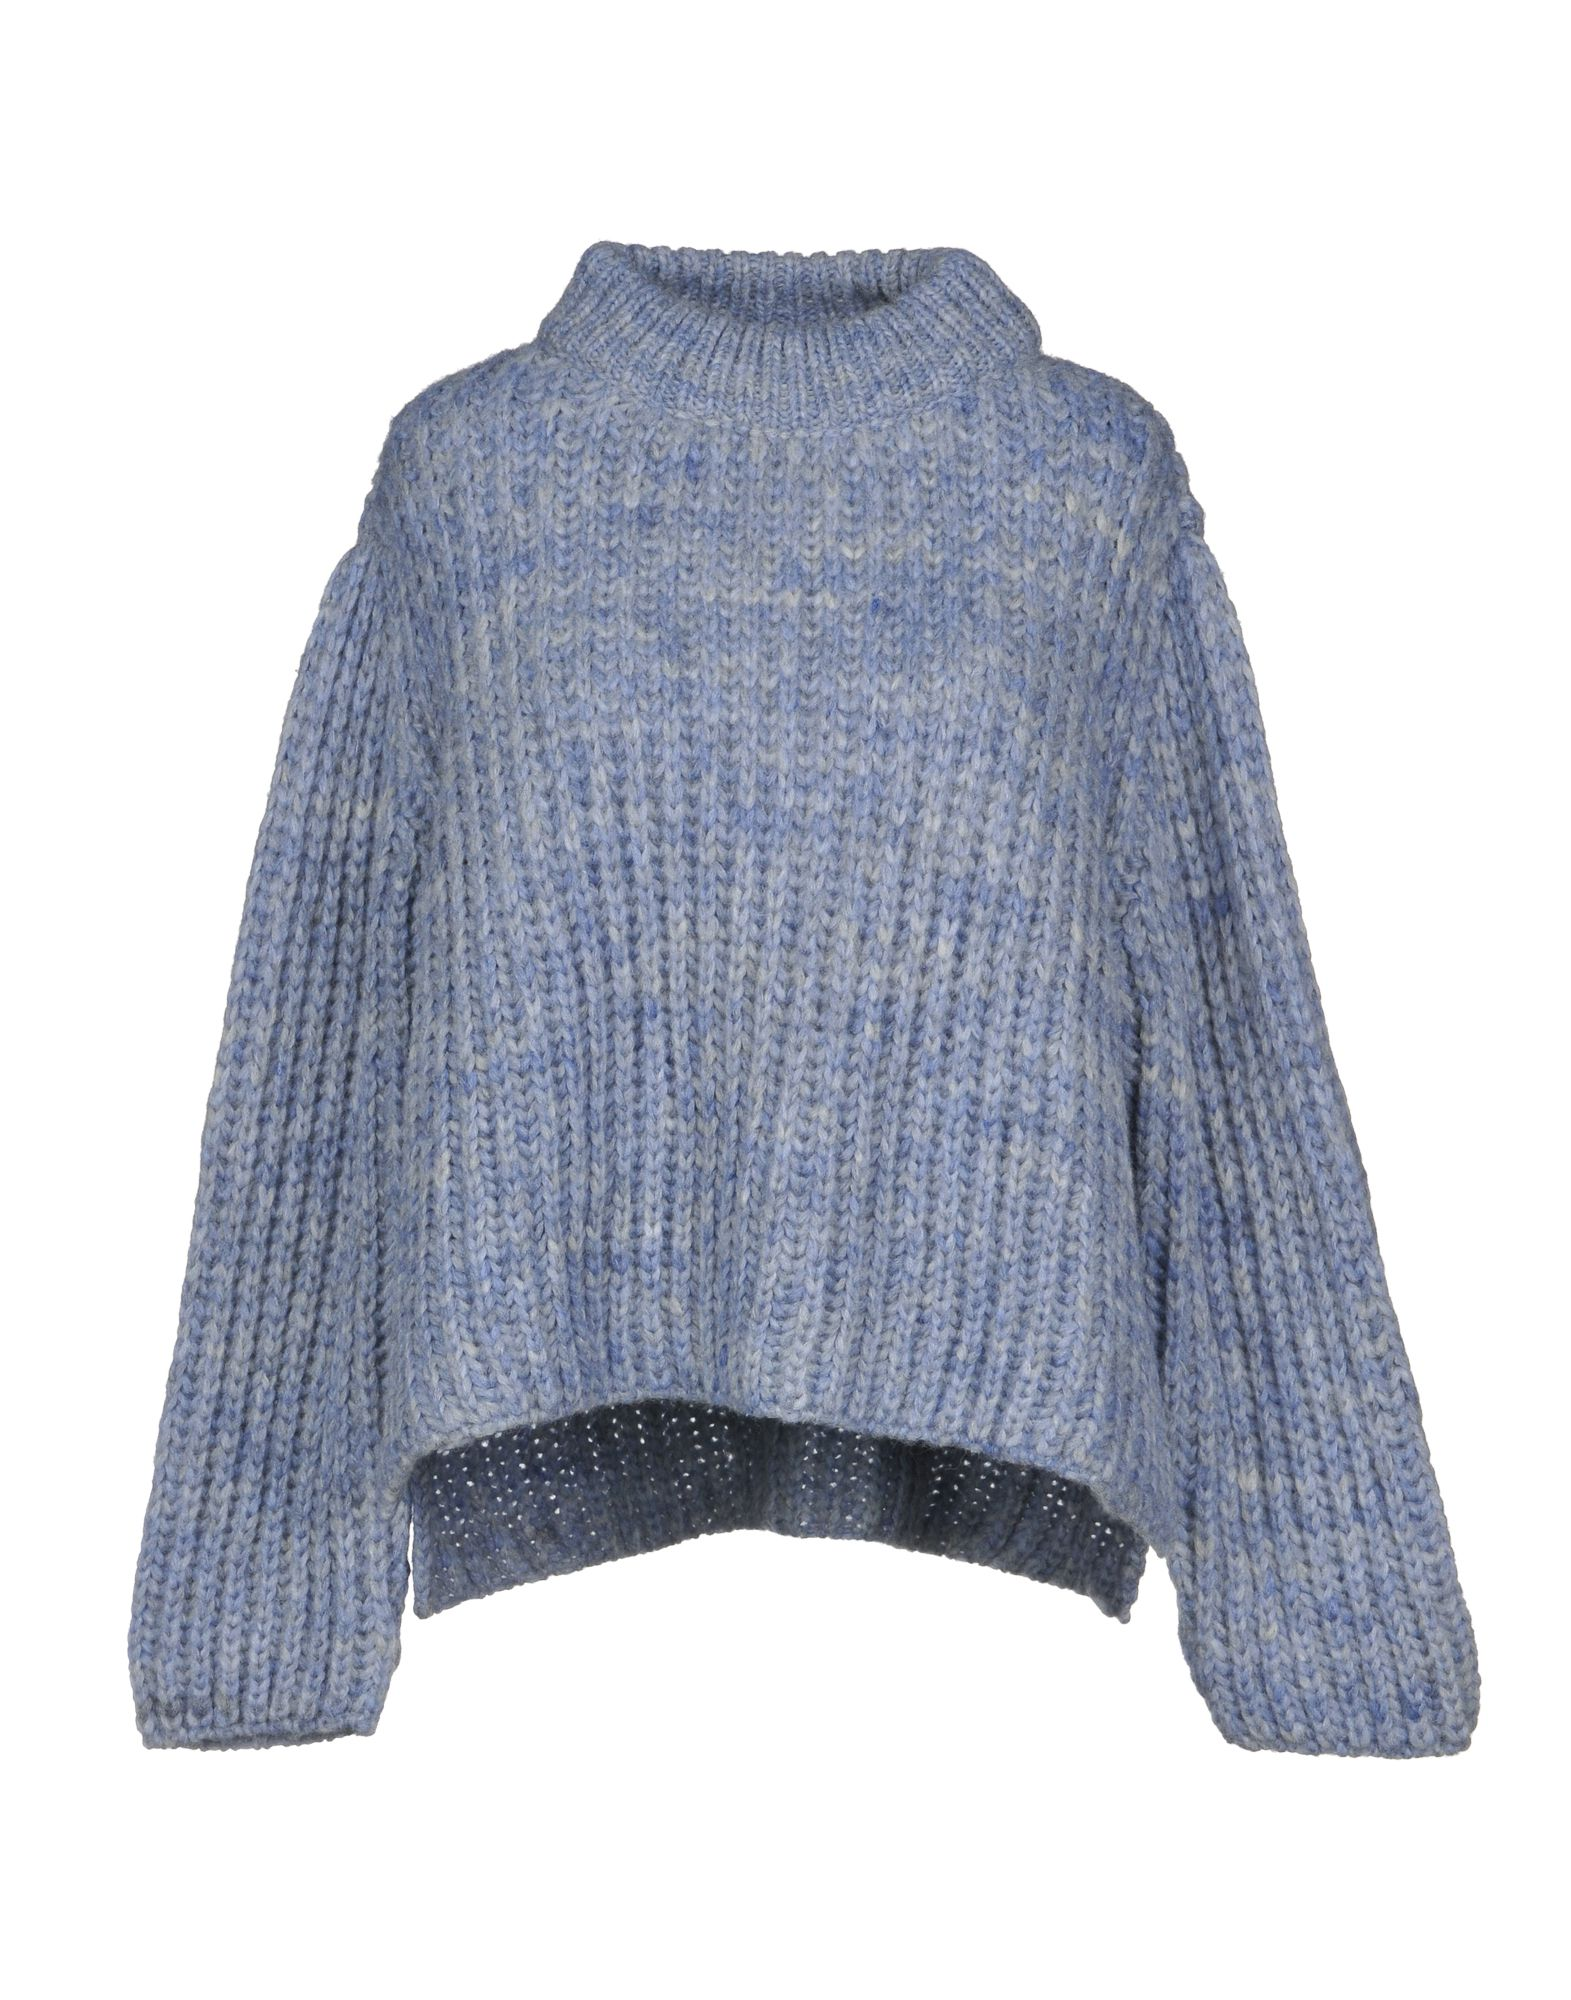 COLLECTION PRIVEE | COLLECTION PRIVEE? Sweaters | Goxip